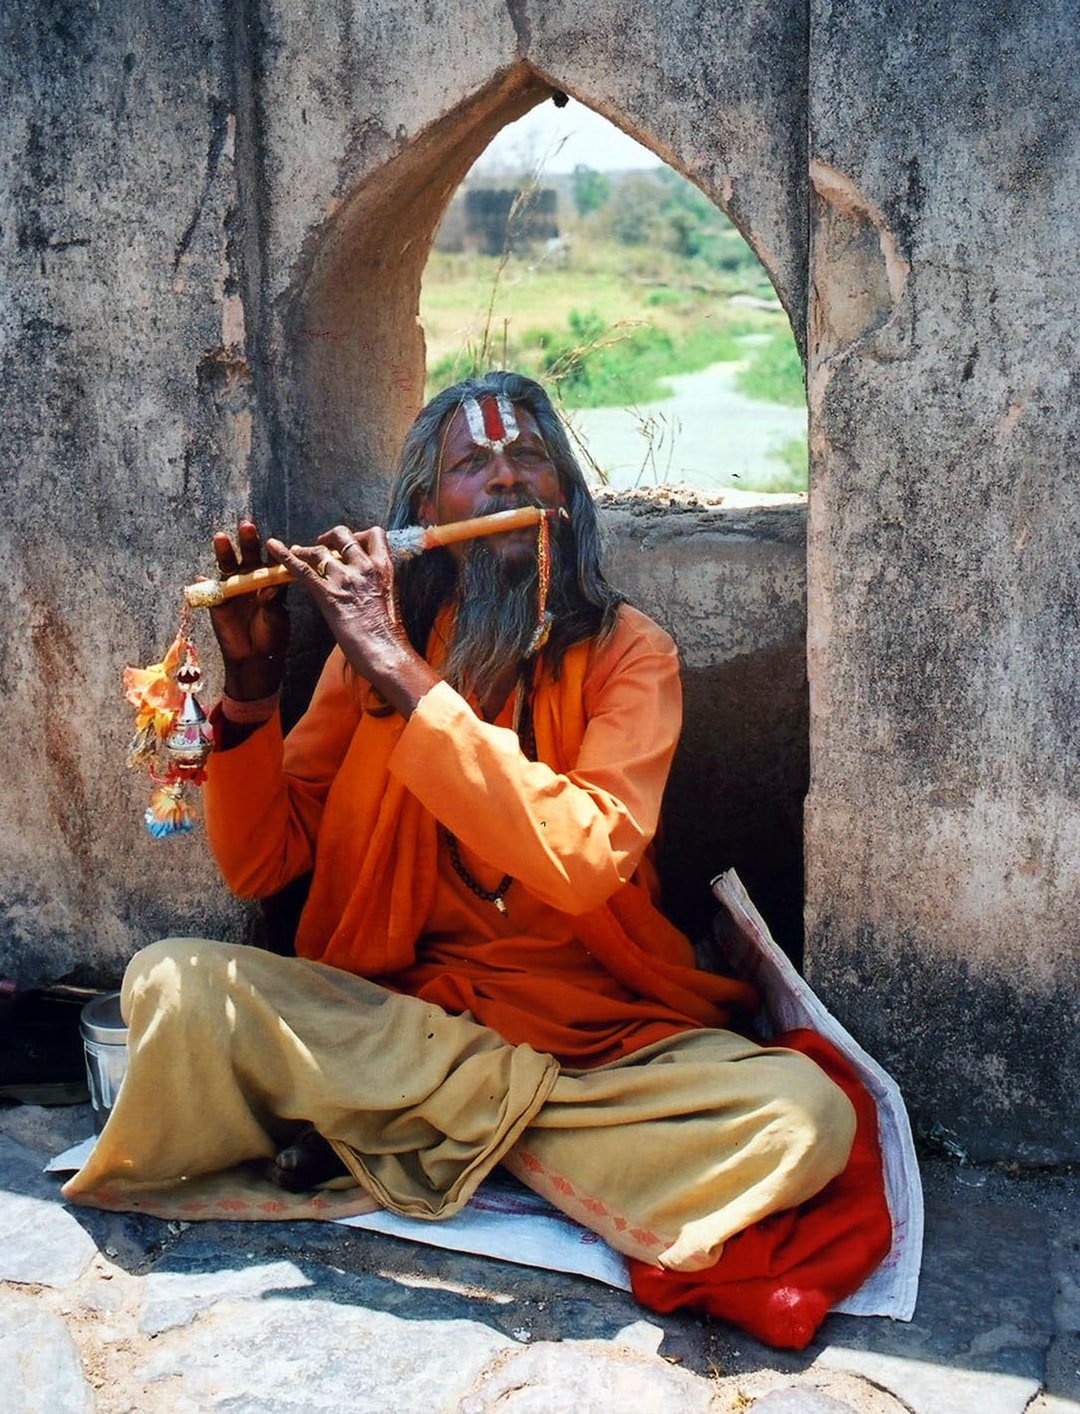 A street performer in India.